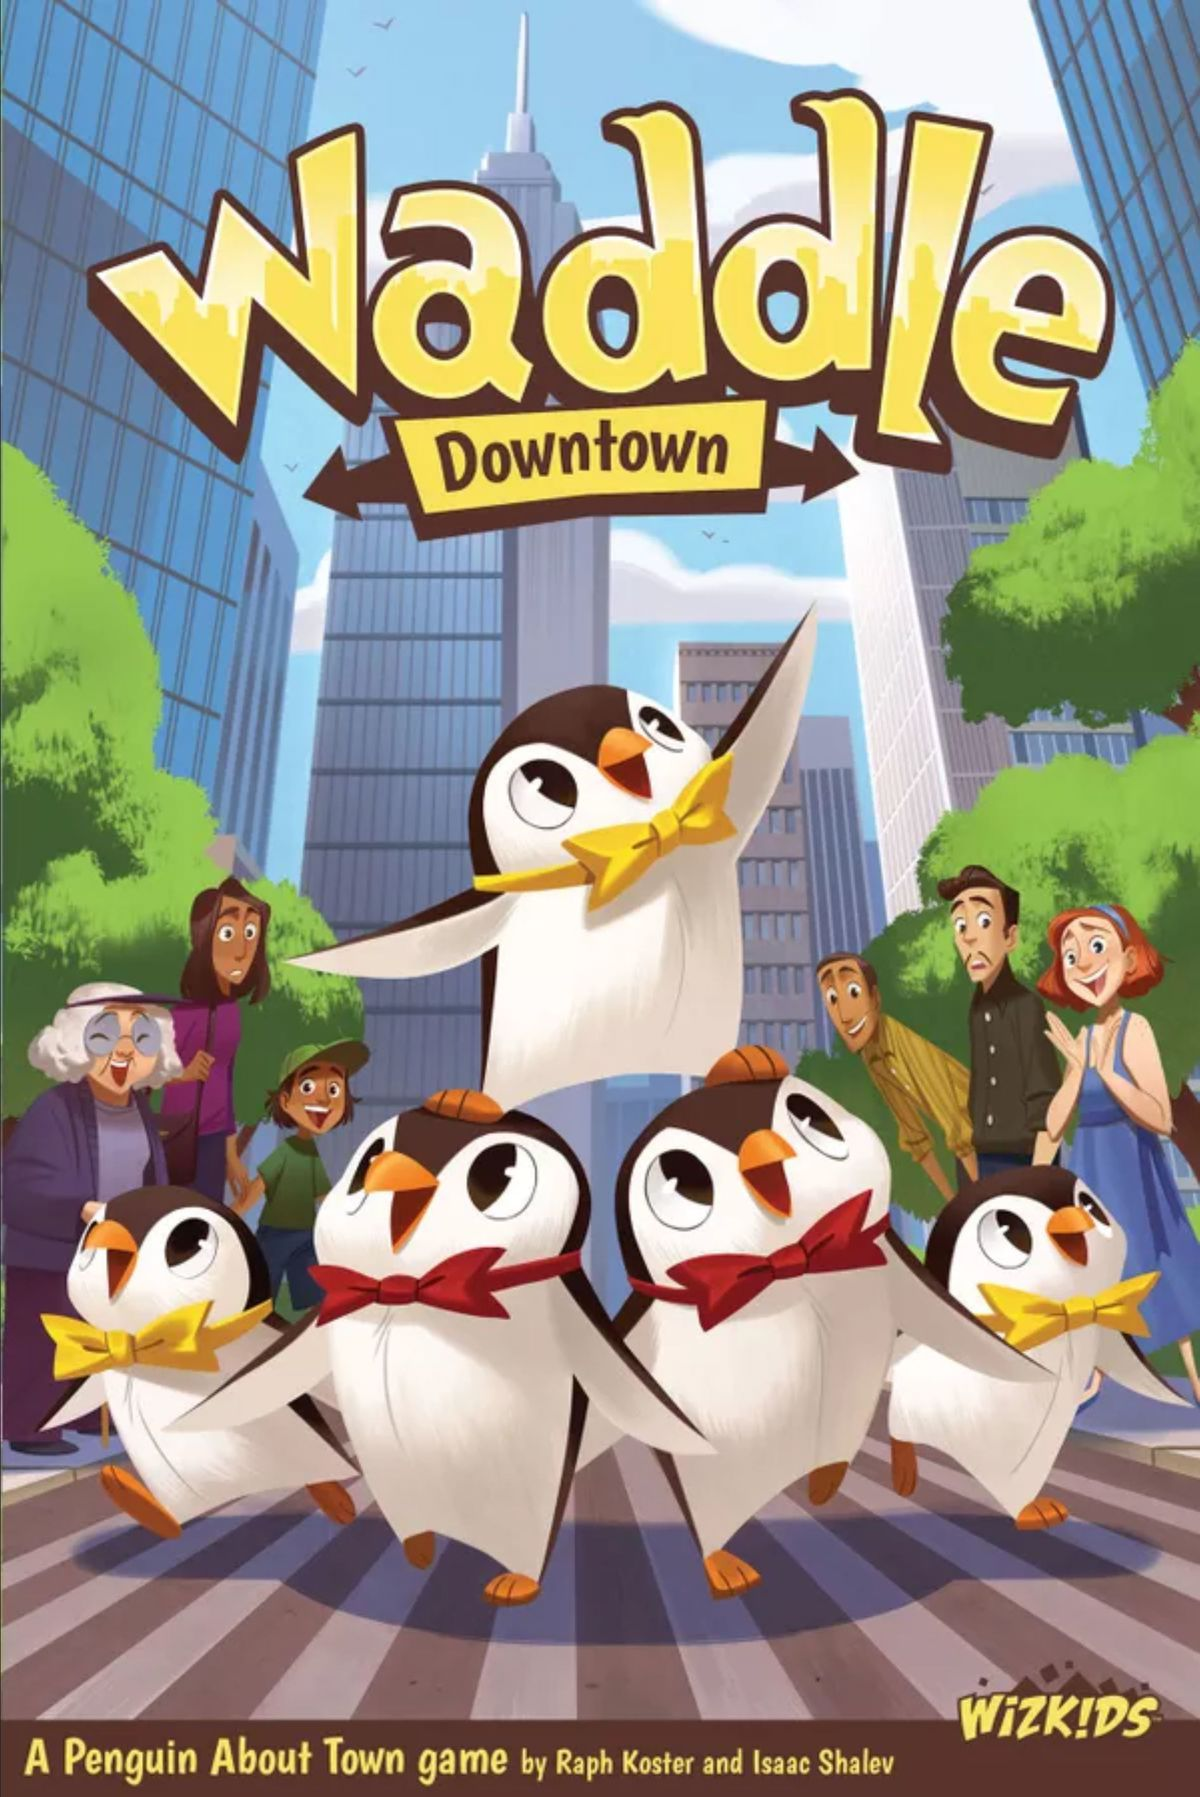 Cover art for Waddle Downtown shows a group of adorable penguins crossing the street. It is heartwarming, and chilling, as the insensate evil lurks in the heart of a major metropolitan city. Damn them. Damn their adorable little bowties to hell.